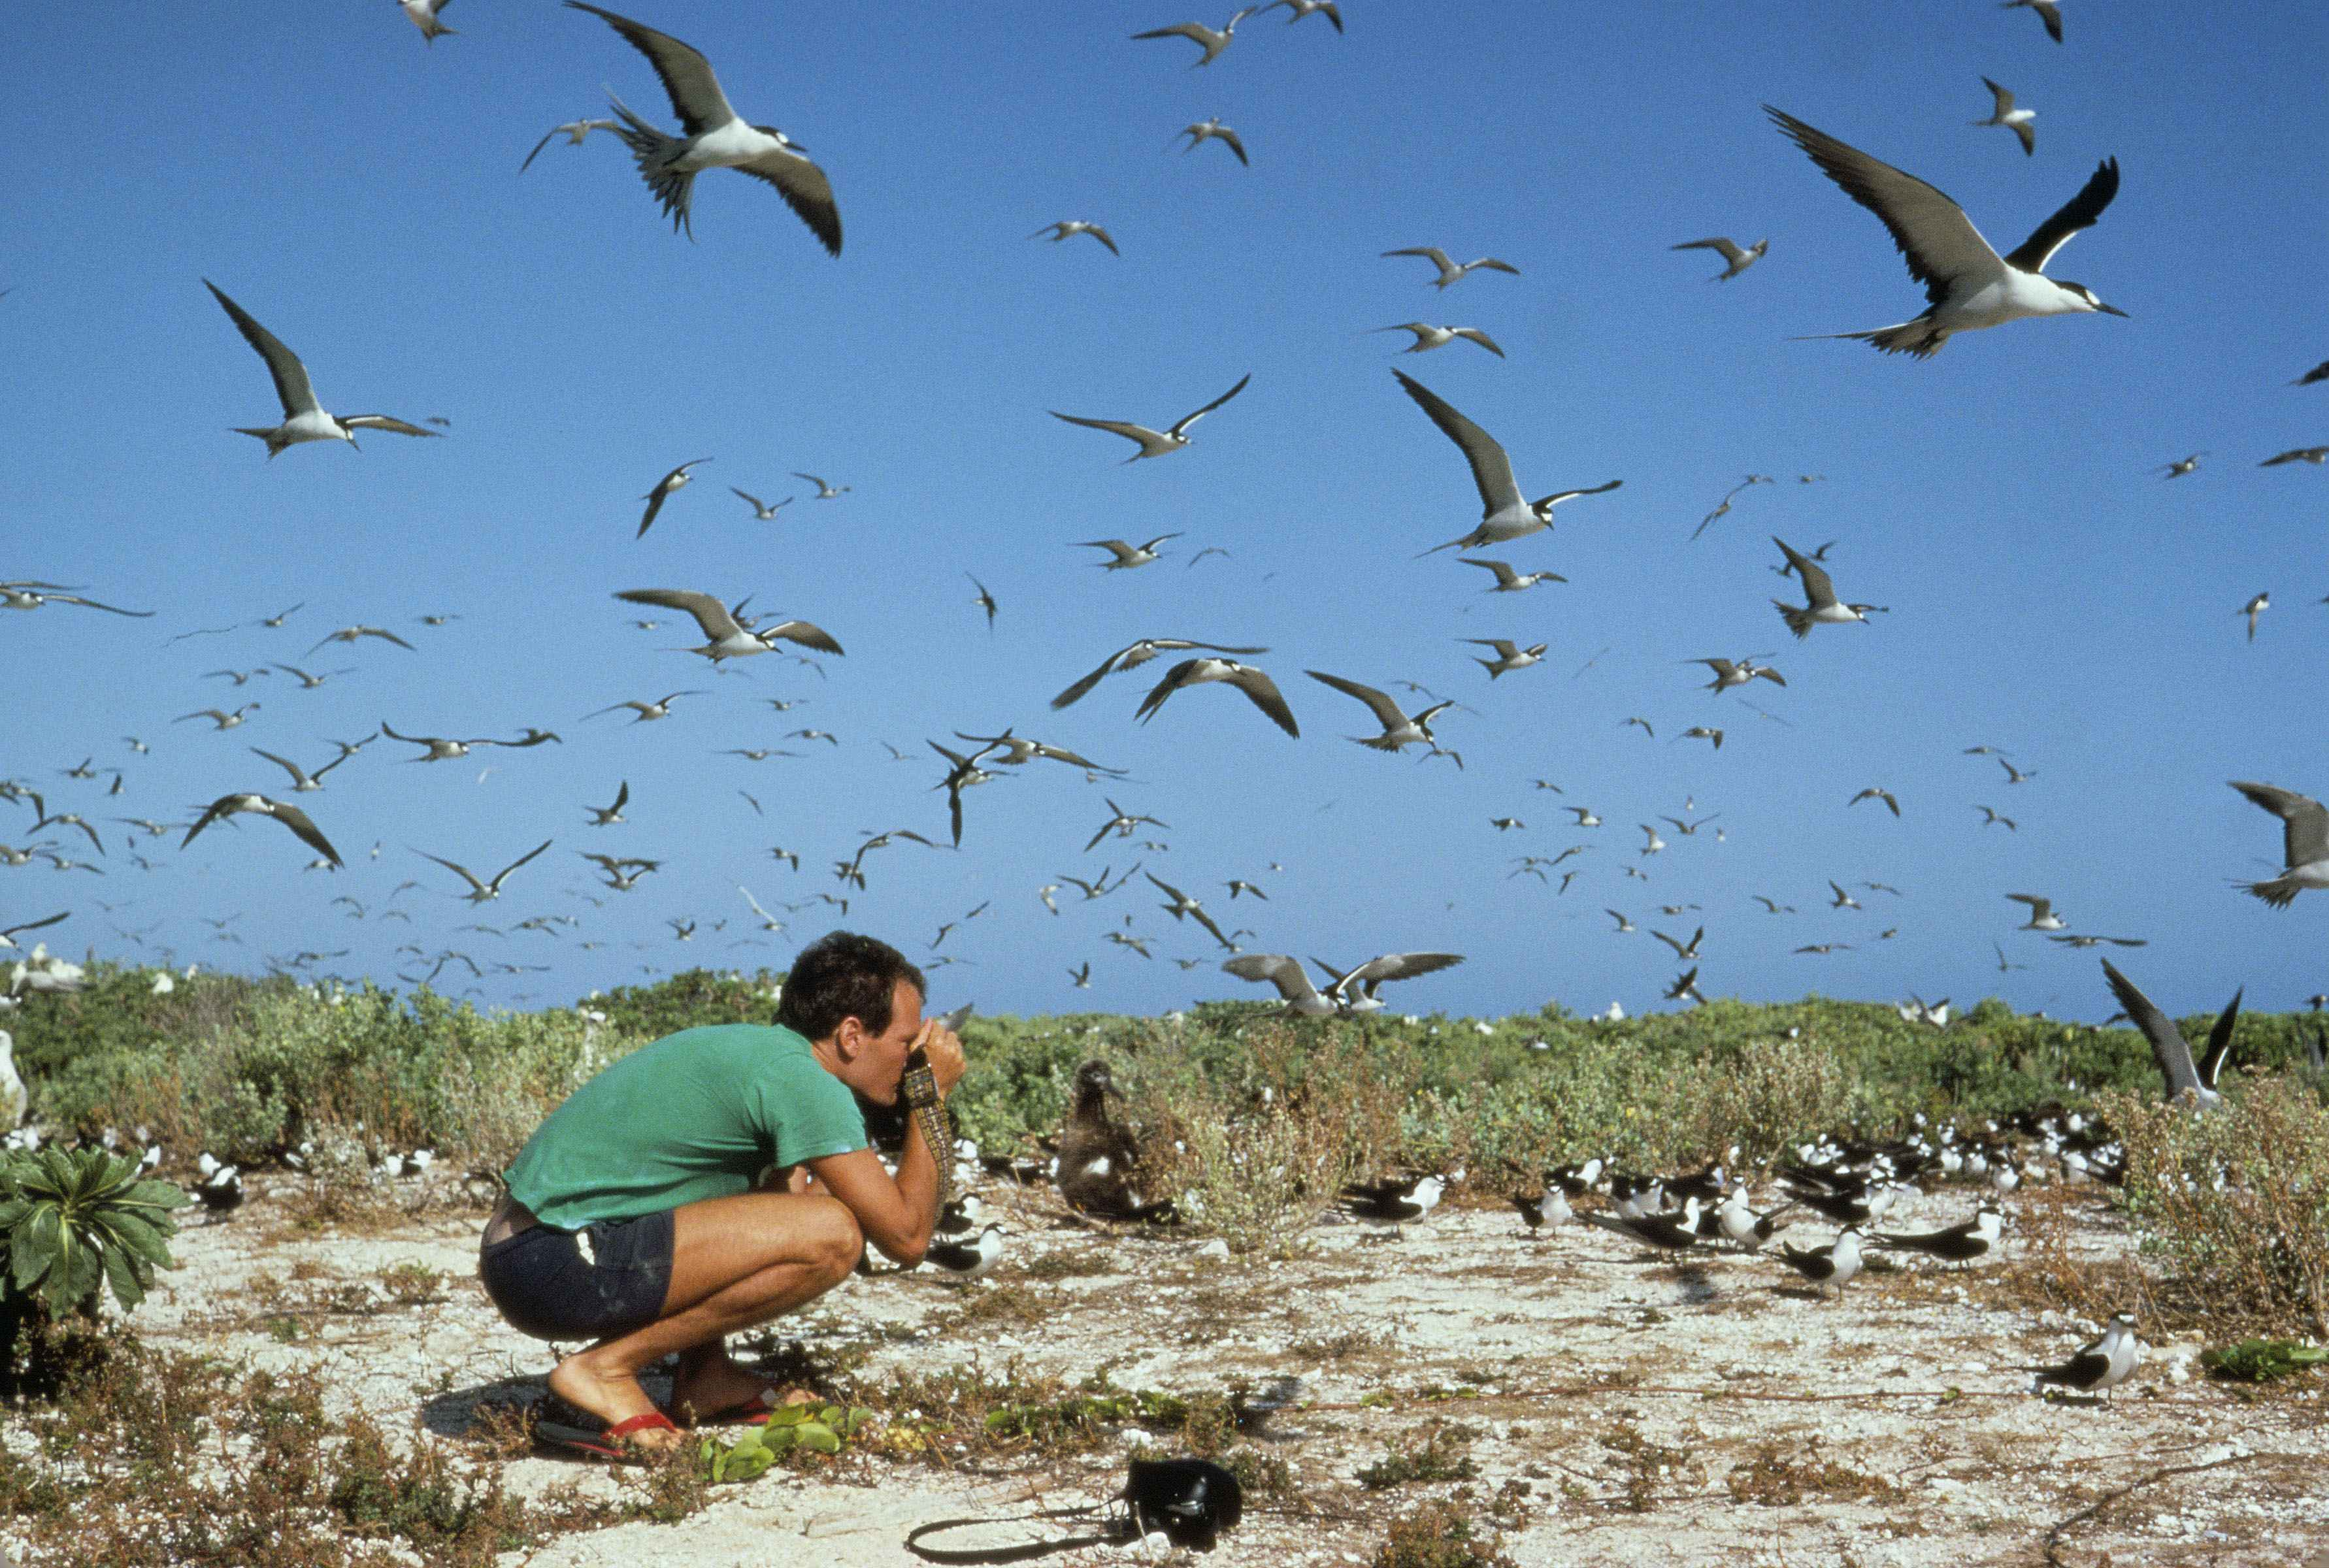 File:Photographers in a flock of birds.jpg - Wikimedia Commons